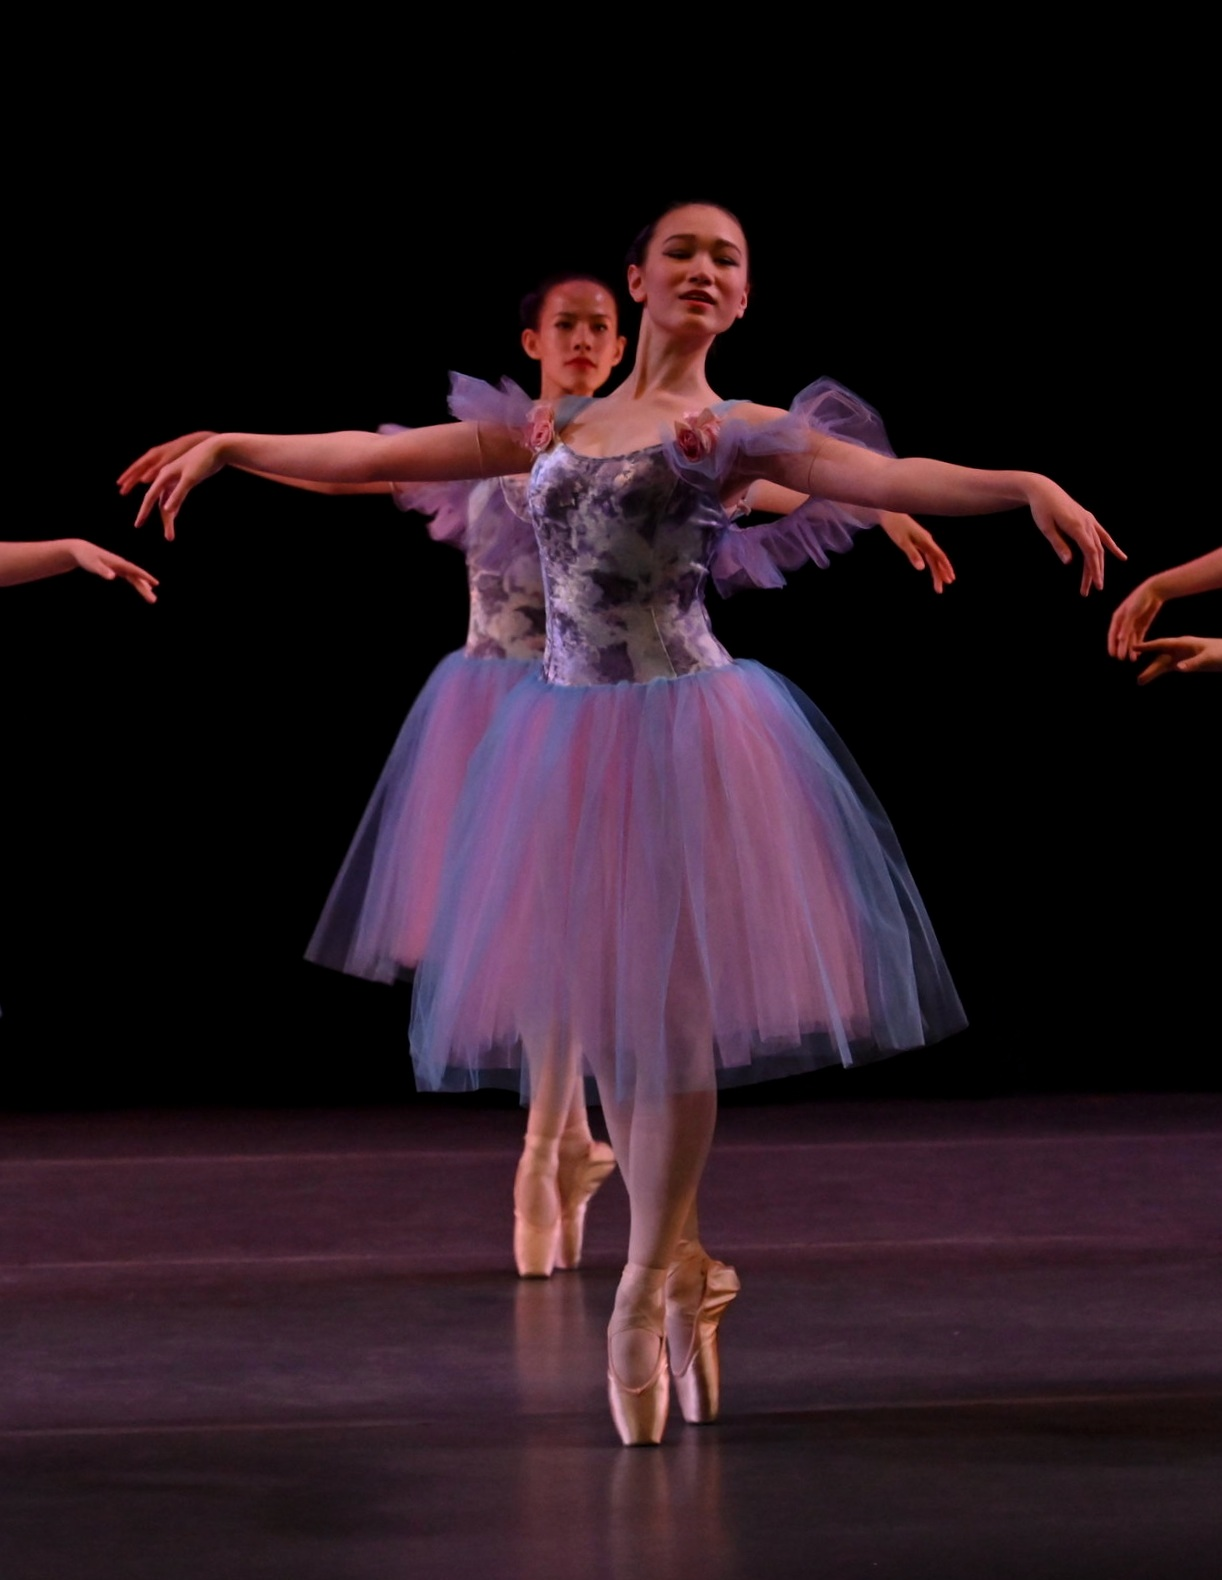 BBT Youth Division dancers  in Kaori Ogasawara's  Midnight Waltz,  photography by Natalia Perez